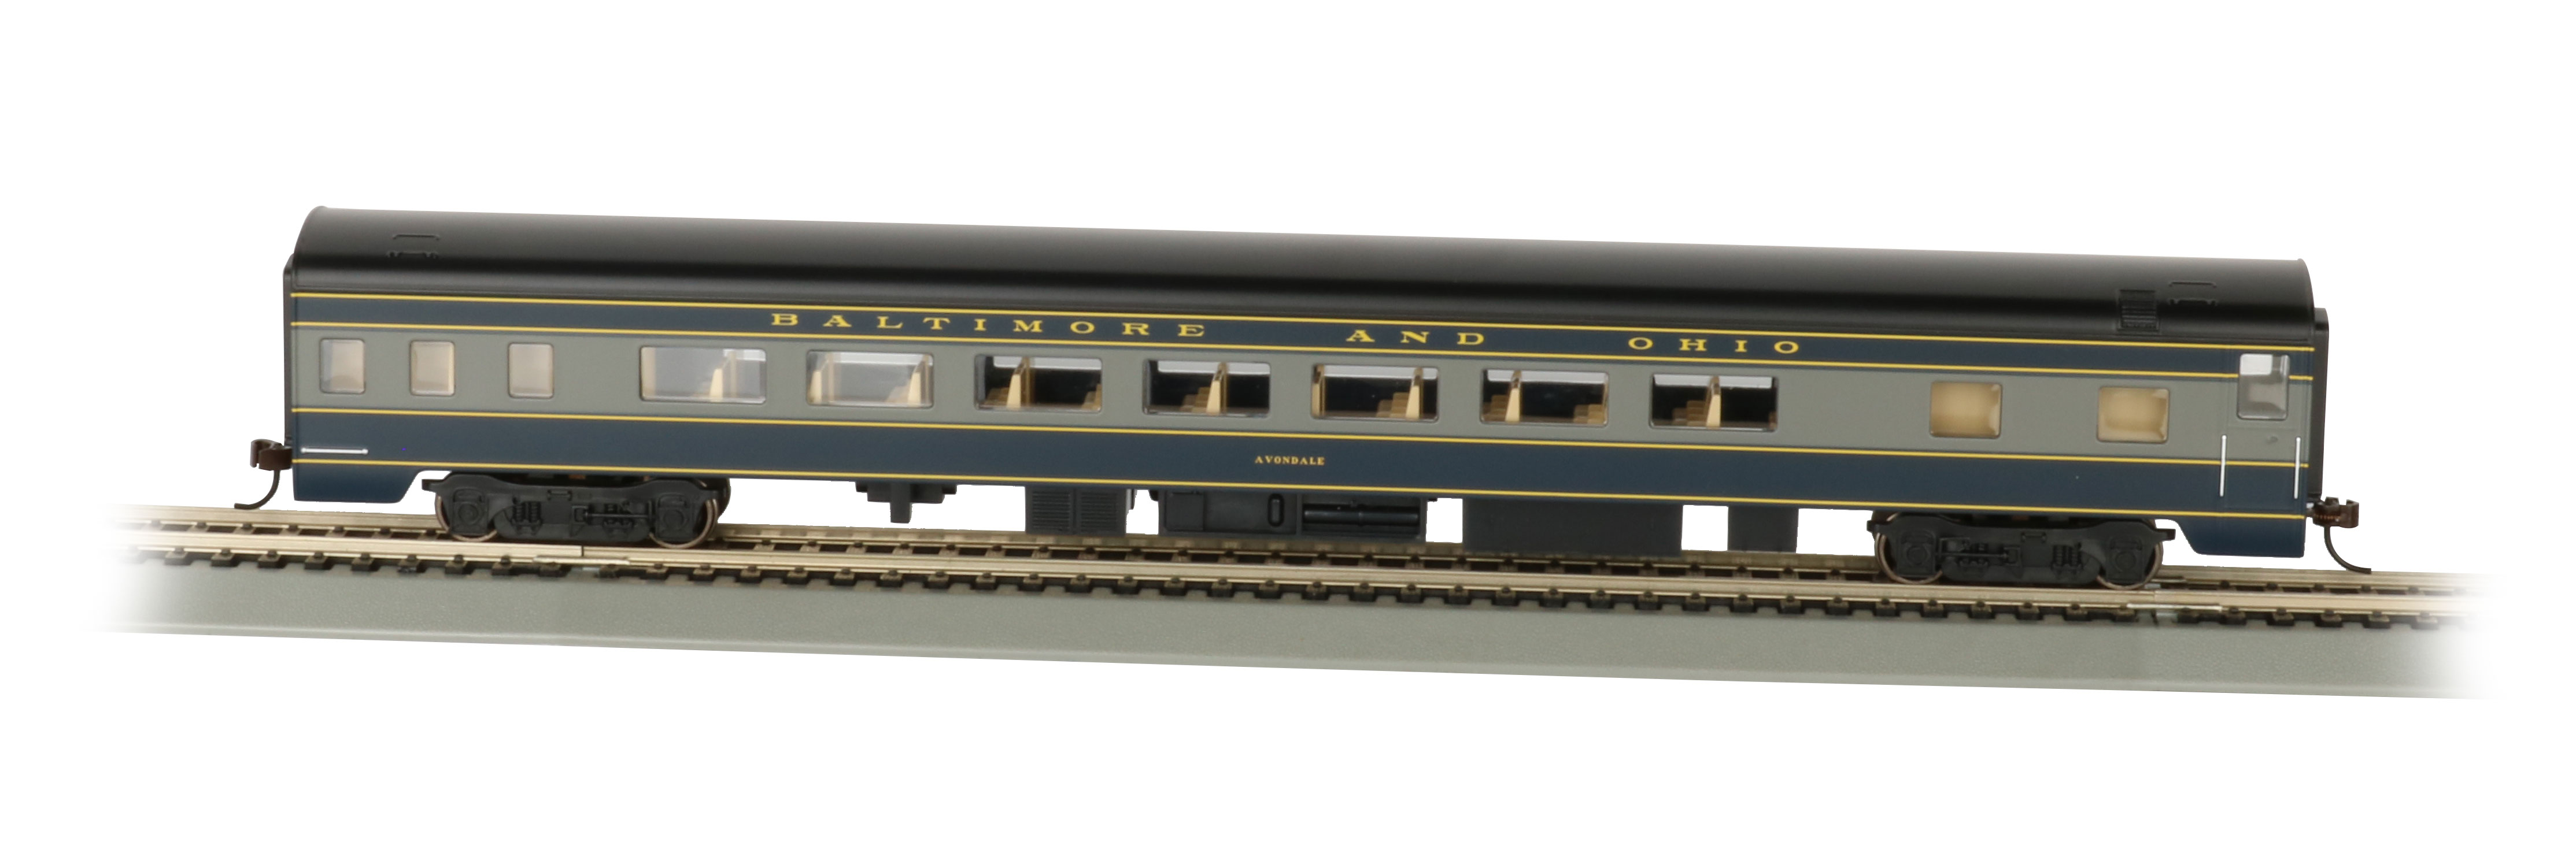 Bachmann 14203 HO 85' Smooth-Side Coach w/Lights Baltimore & Ohio